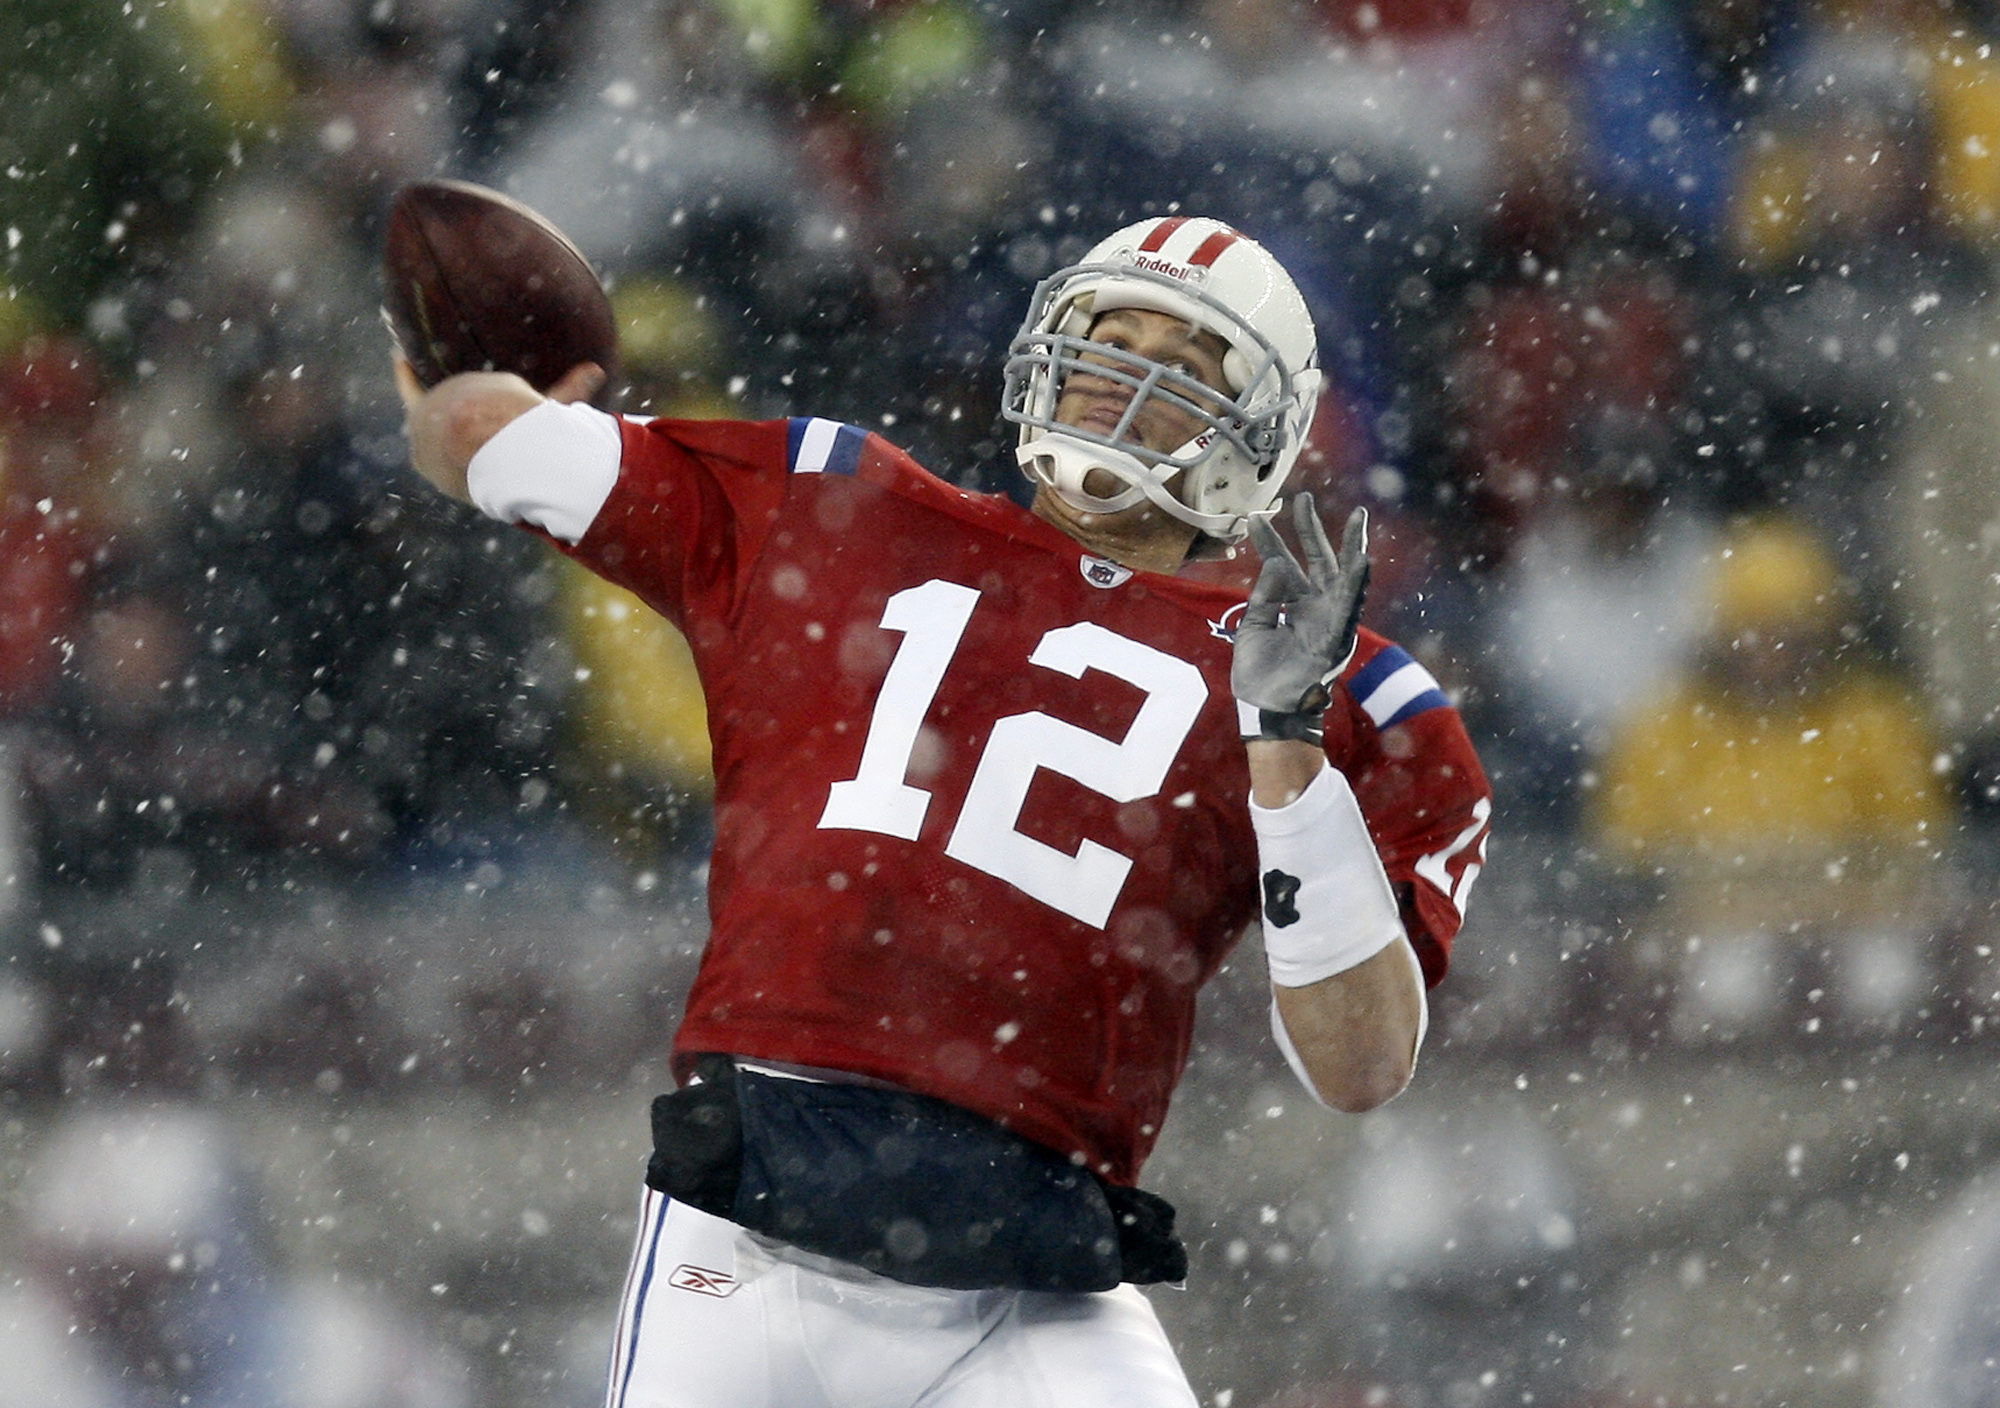 FILE - In this Oct. 18, 2009, file photo, New England Patriots quarterback Tom Brady throws a pass during the second quarter of an NFL football game against the Tennessee Titans at Gillette Stadium in Foxborough, Mass. The Patriots play the Titans on Sund